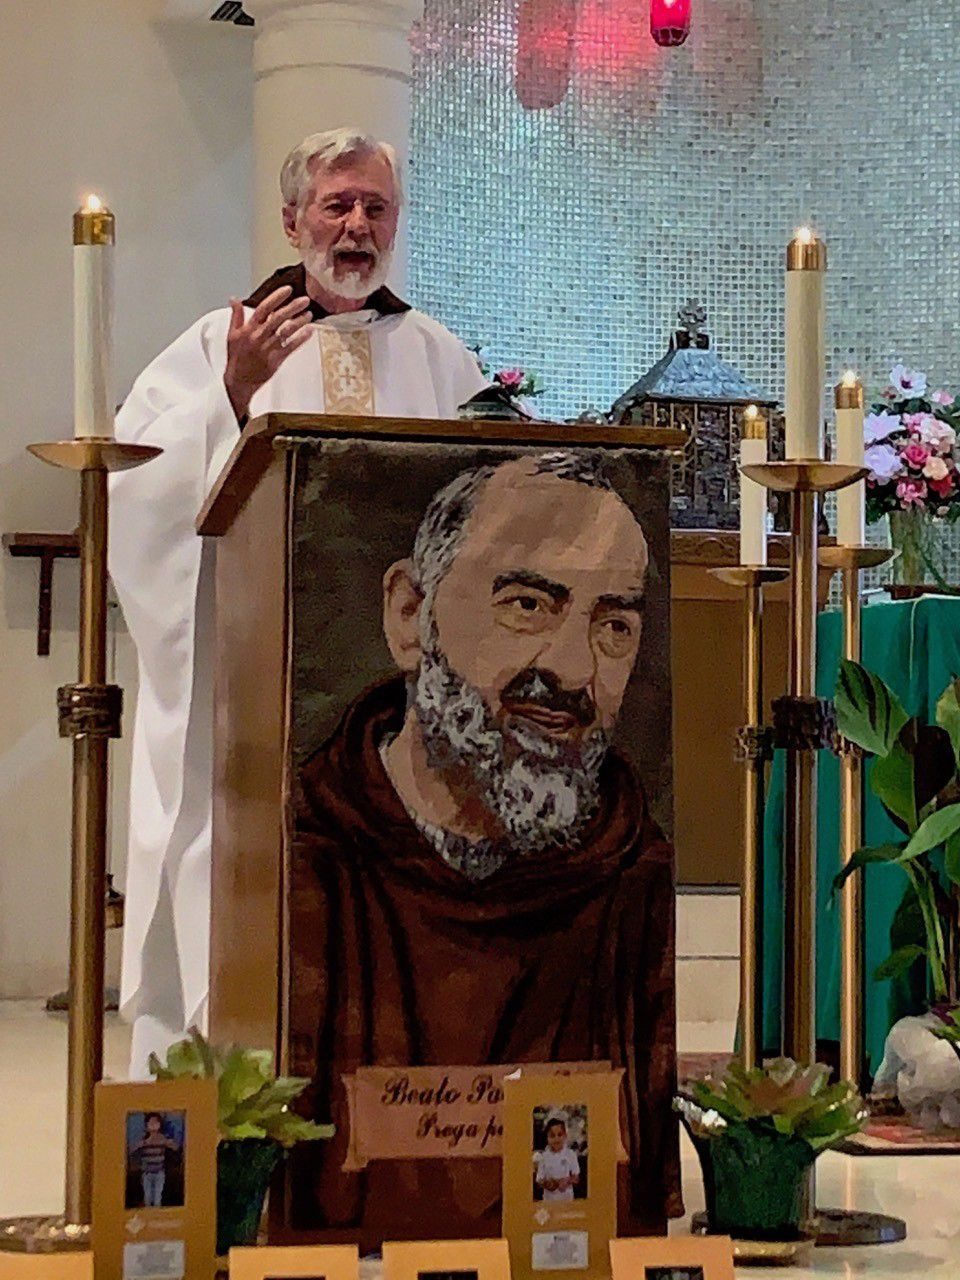 Padre Pio seminar focuses on steps to holiness